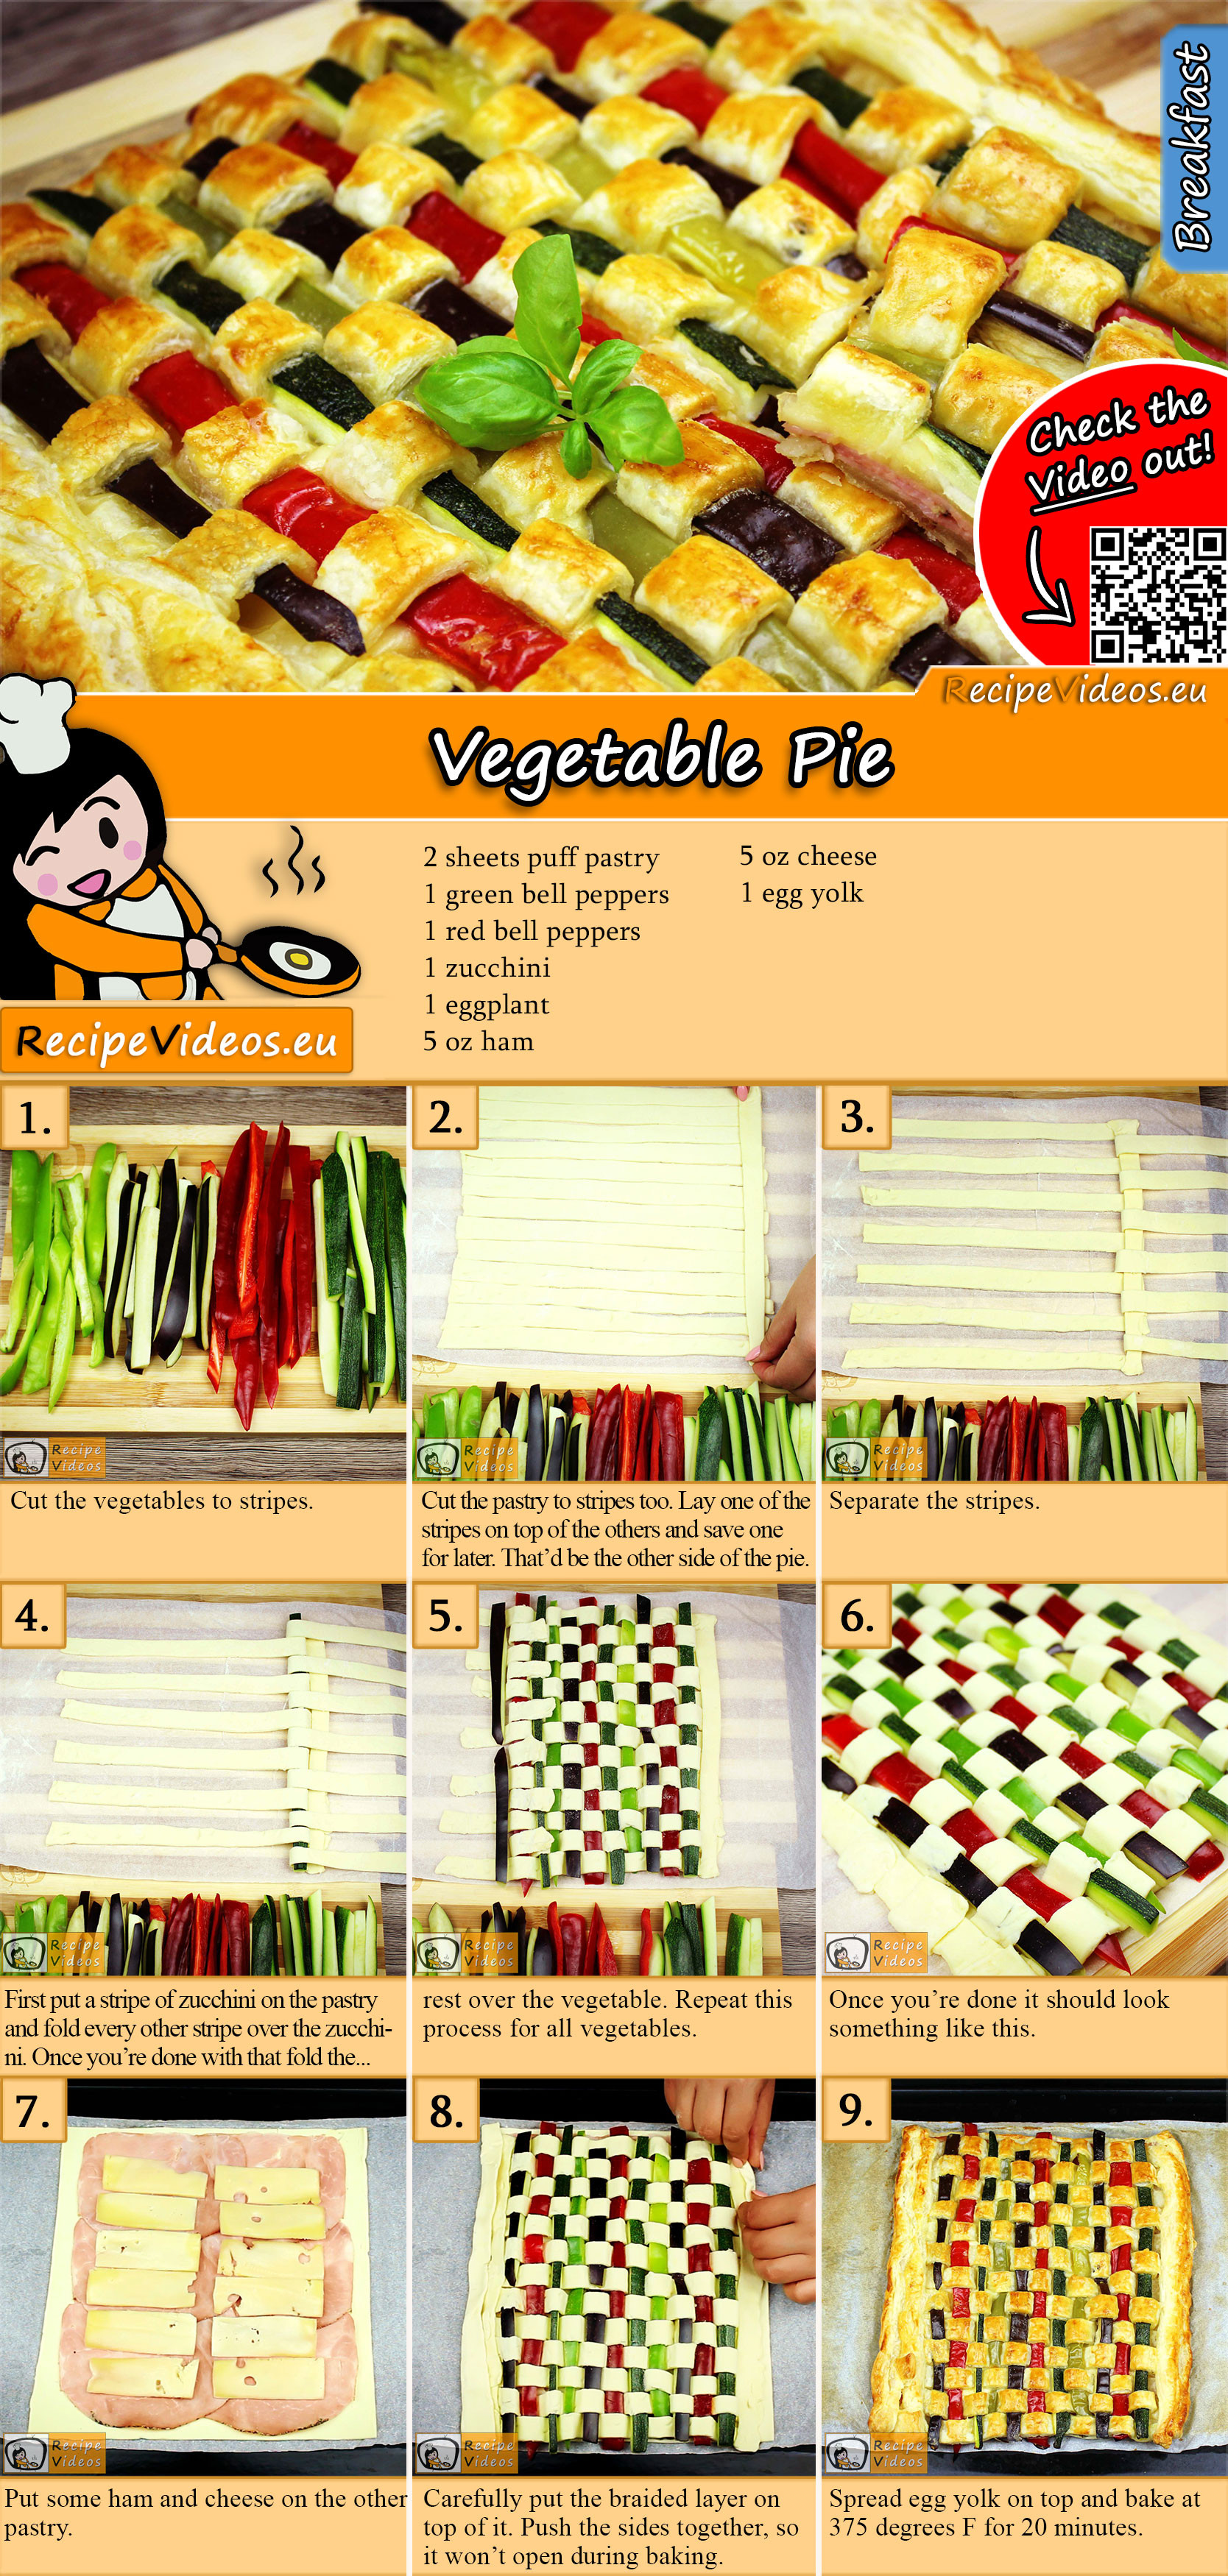 Vegetable Pie recipe with video